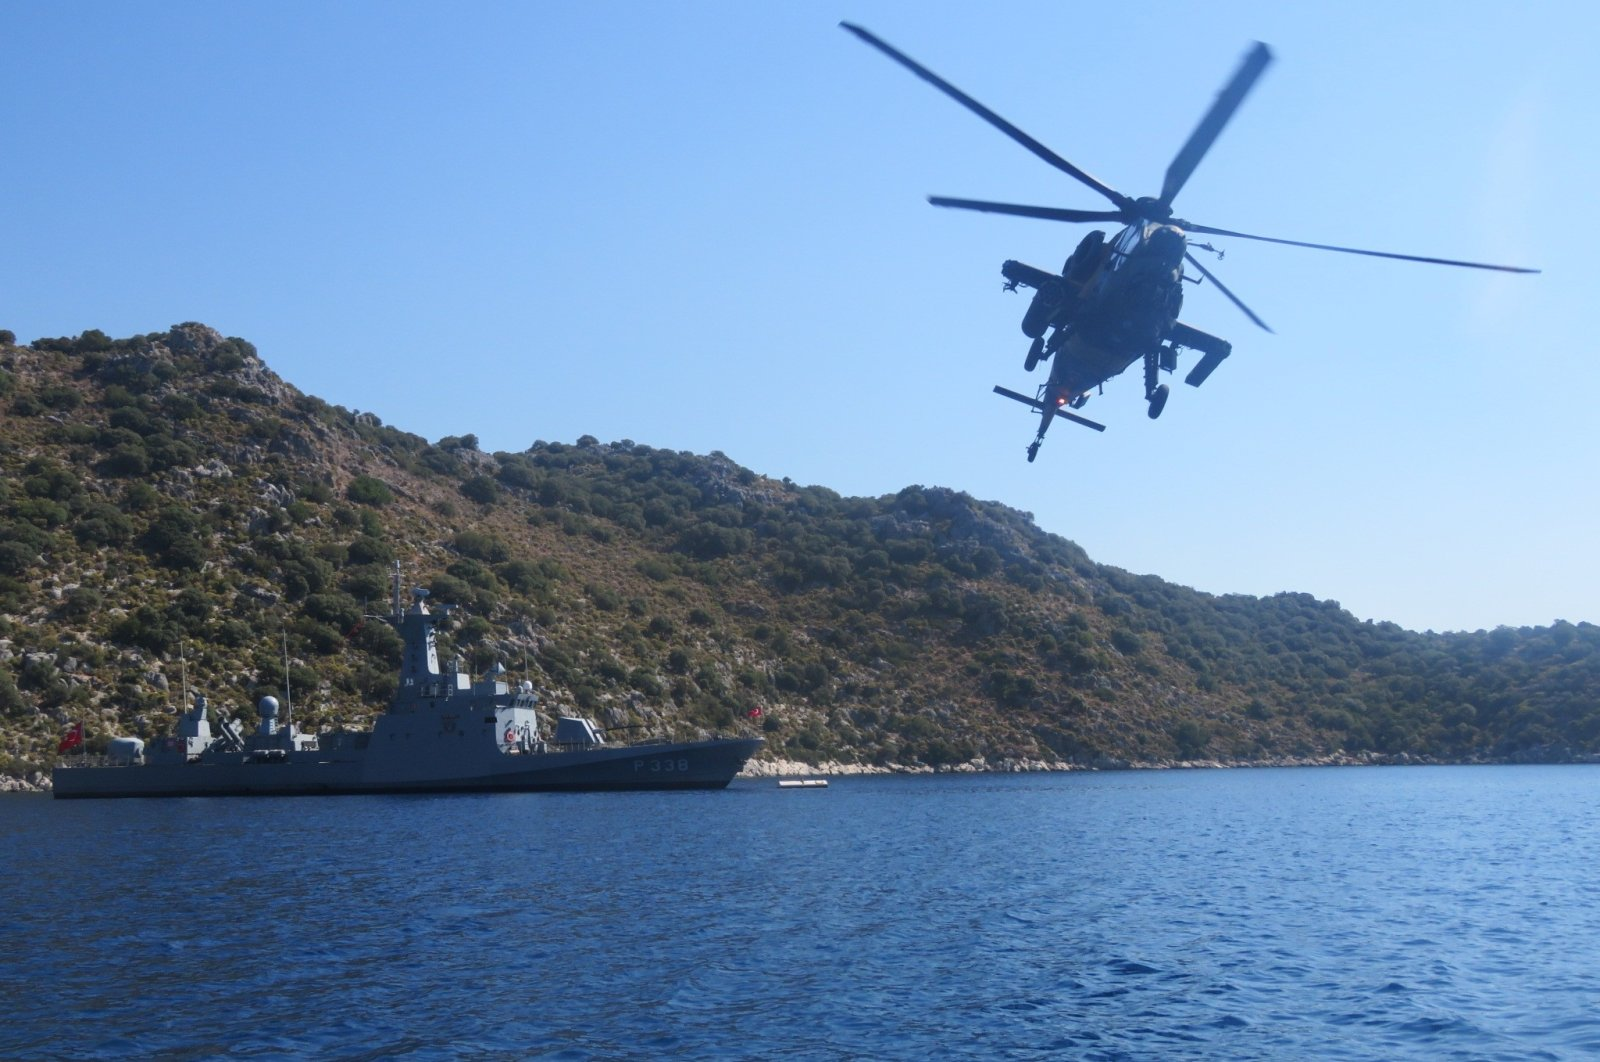 Turkish Navy Fast Patrol Boats and Turkish Army Attack Helicopters conduct their joint training in the Eastern Mediterranean and the Aegean Sea, Aug. 27, 2020. (İHA Photo)